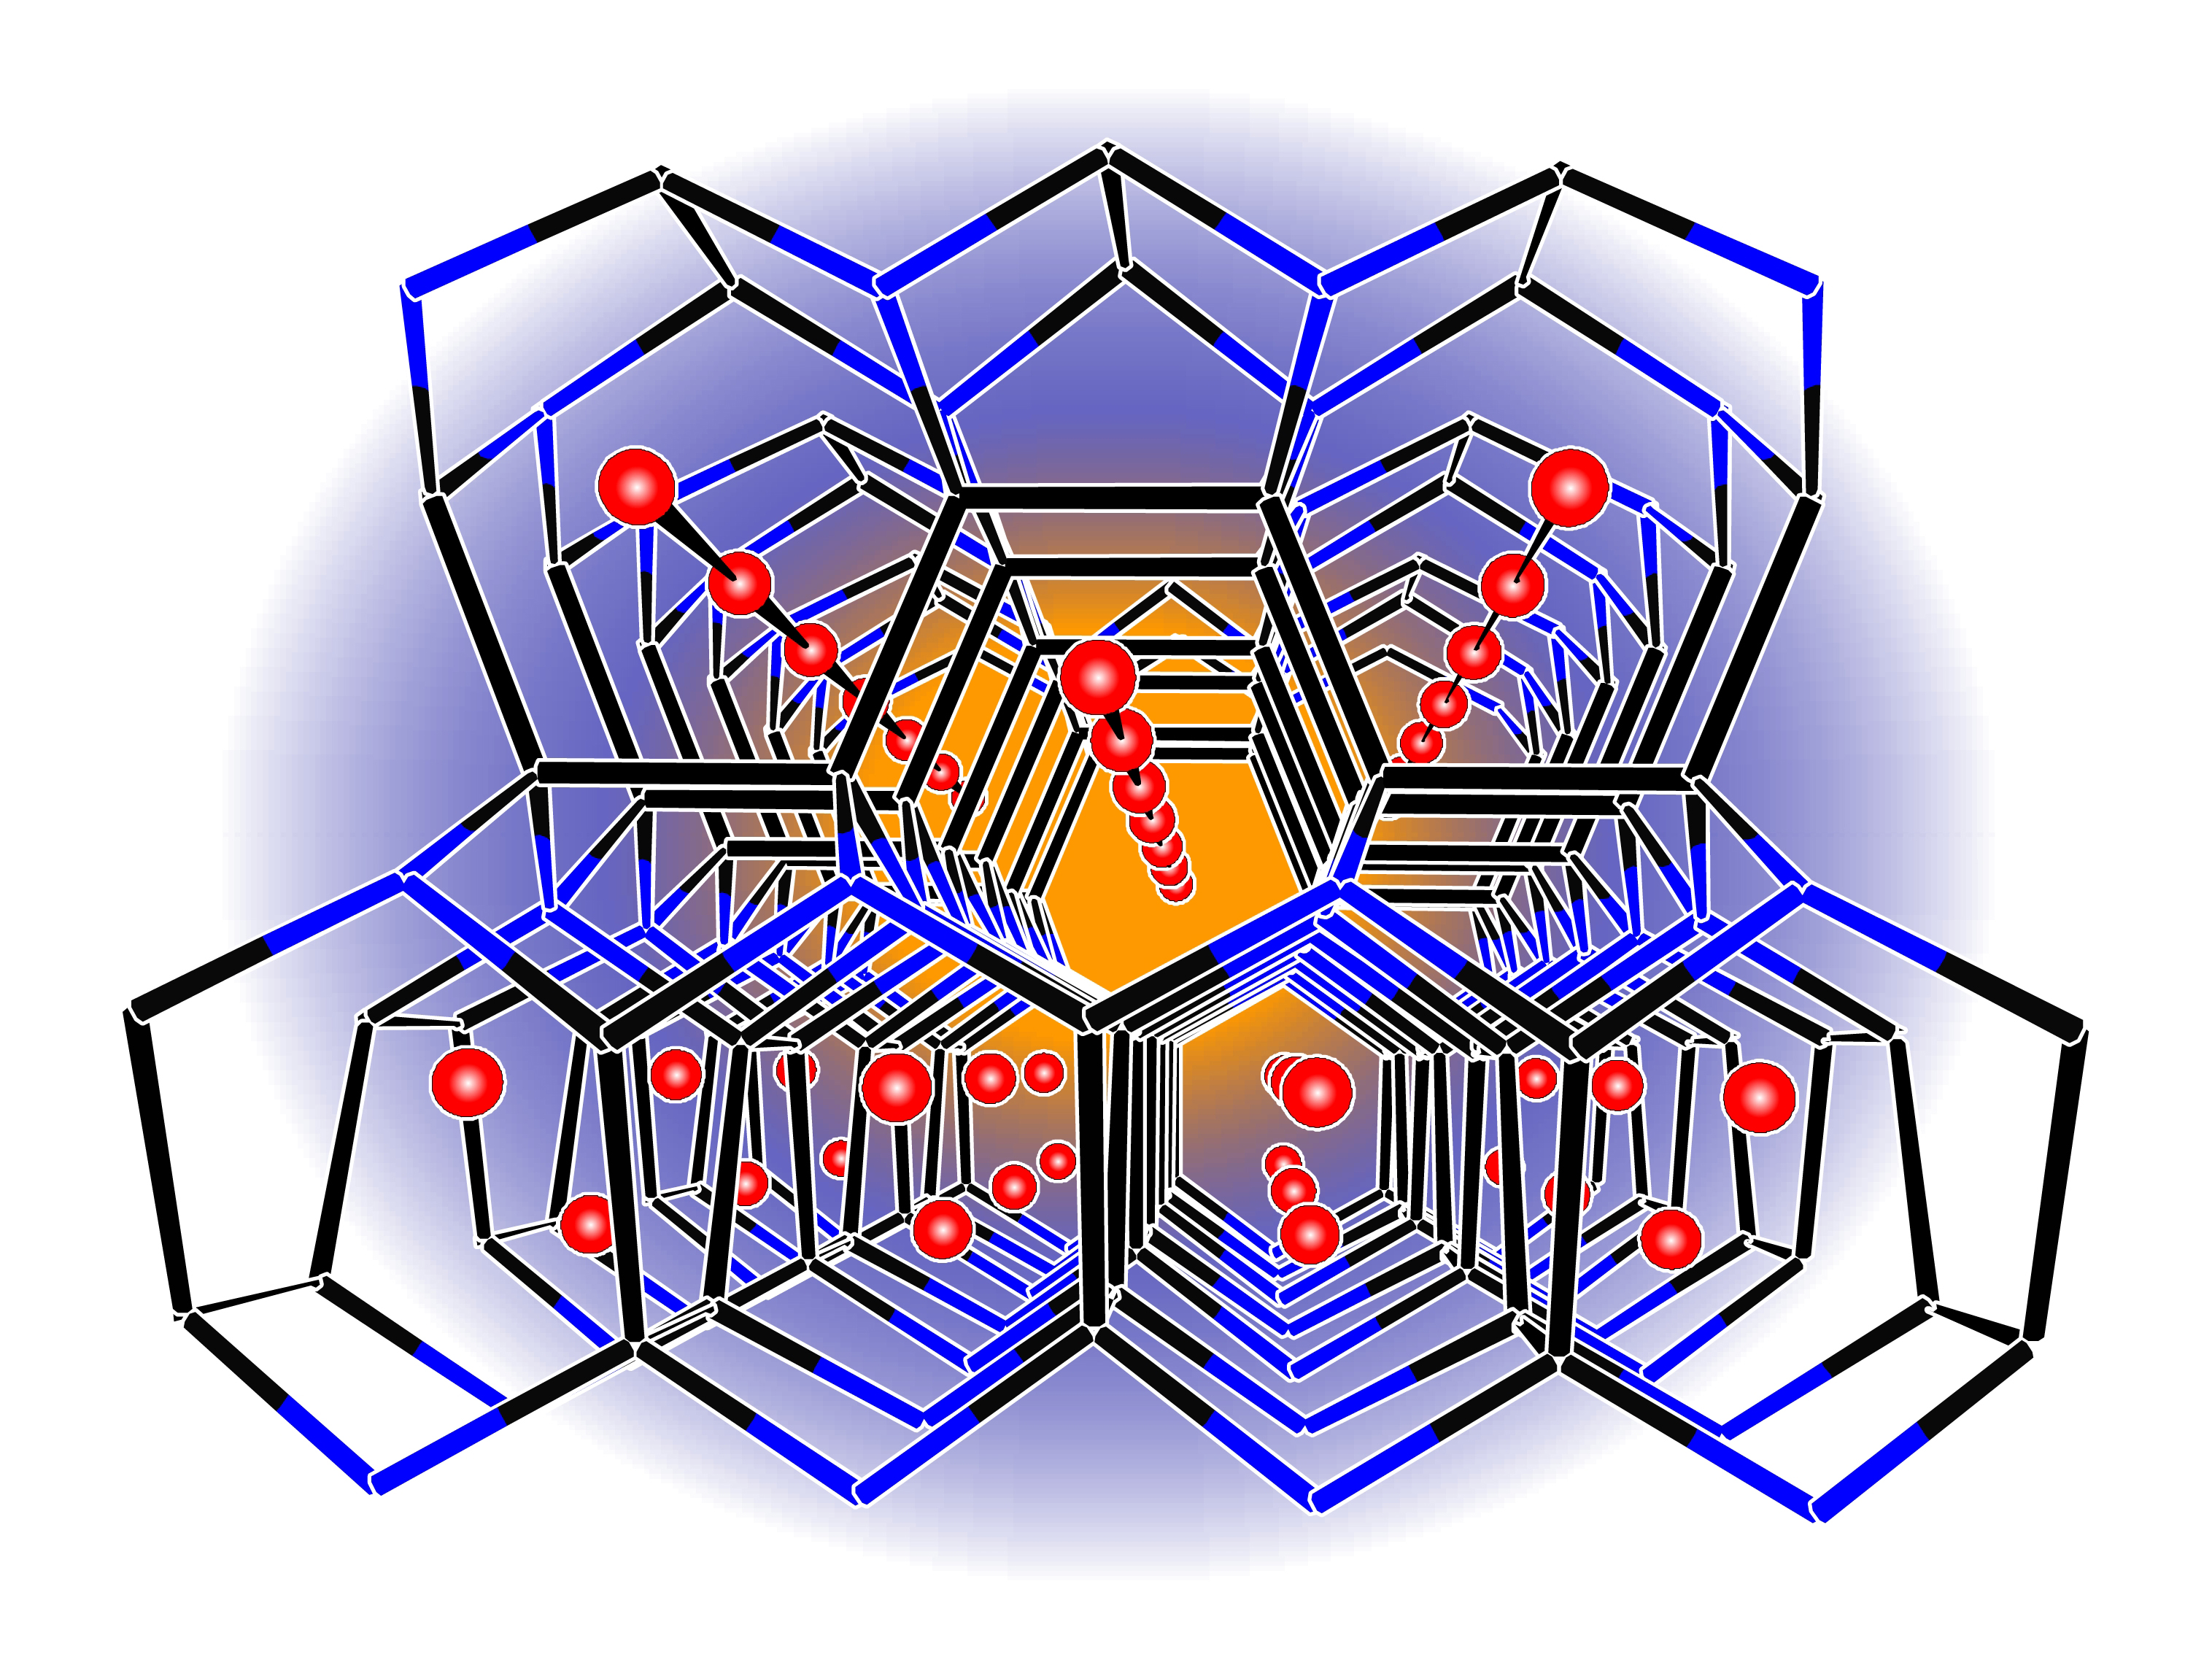 New framework from boron and silicon could smooth the way to a newly synthesized borosilicid framework hosts lithium atoms in its channels making it a promising candidate for electrodes of lithium ion batteries buycottarizona